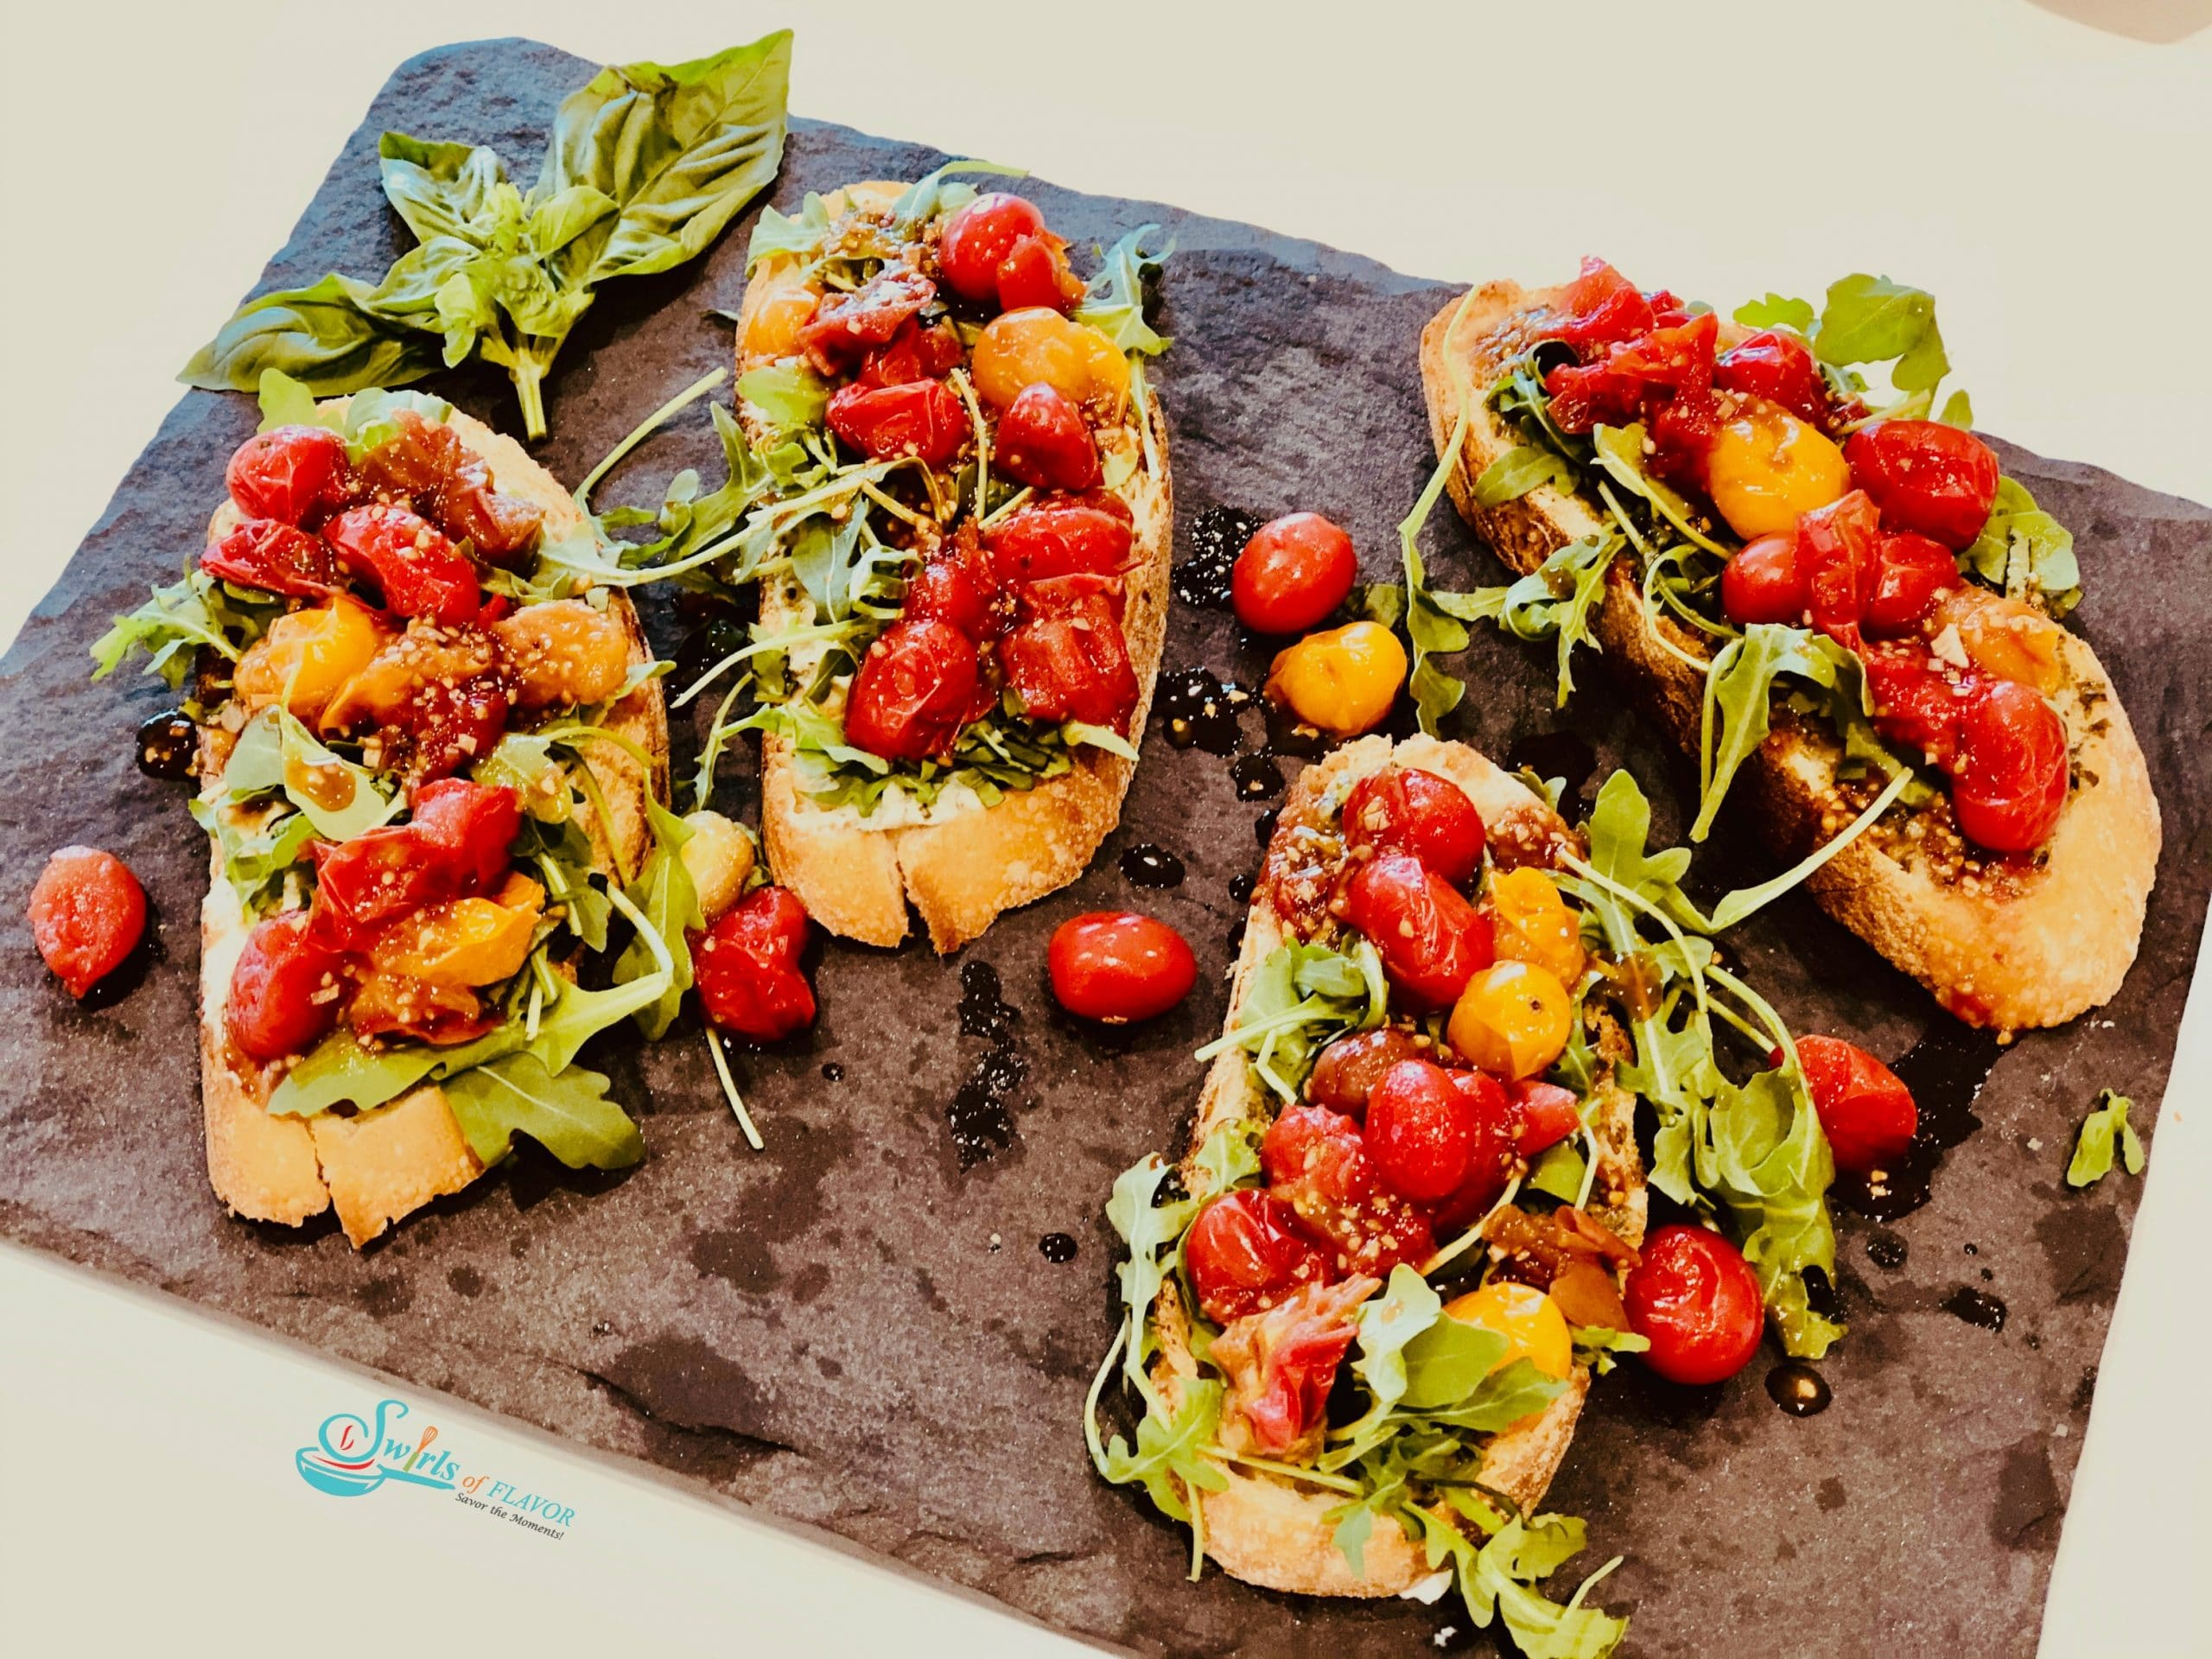 Four toasts topped with tomatoes and arugula on a grey slate